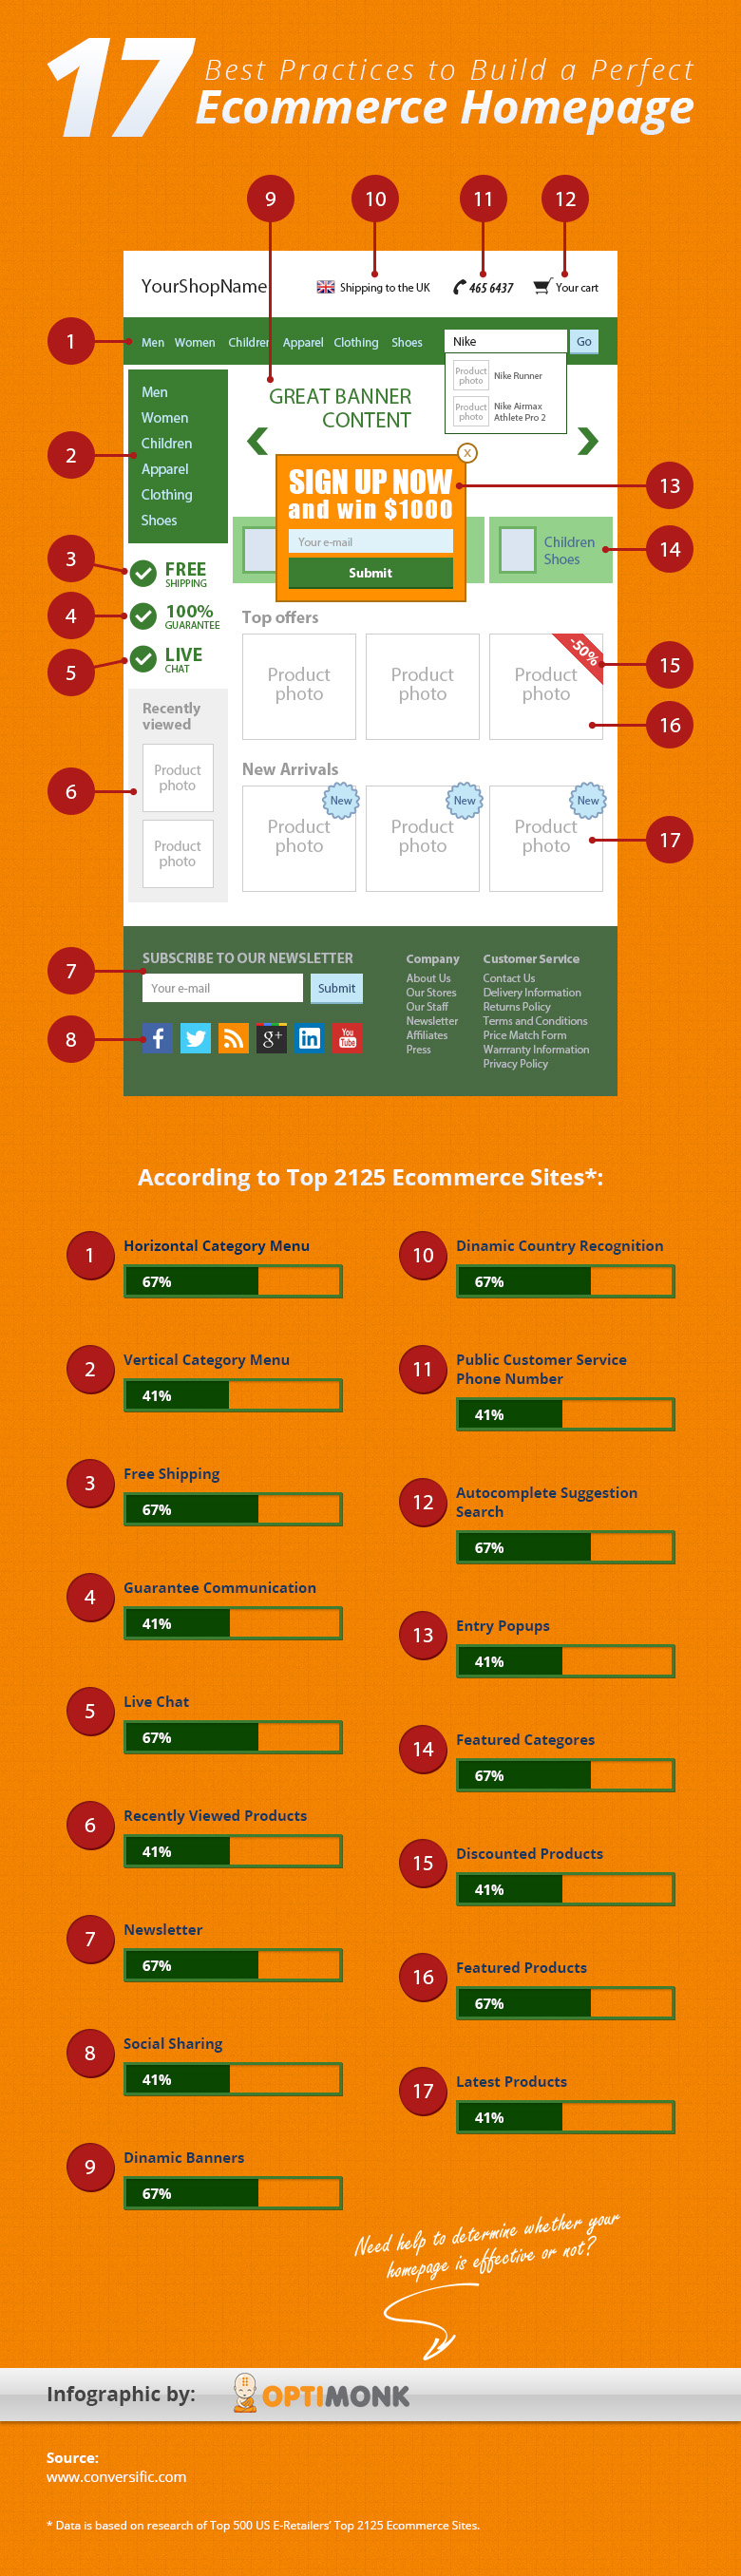 17 Best Practices to Build a Perfect Ecommerce Homepage